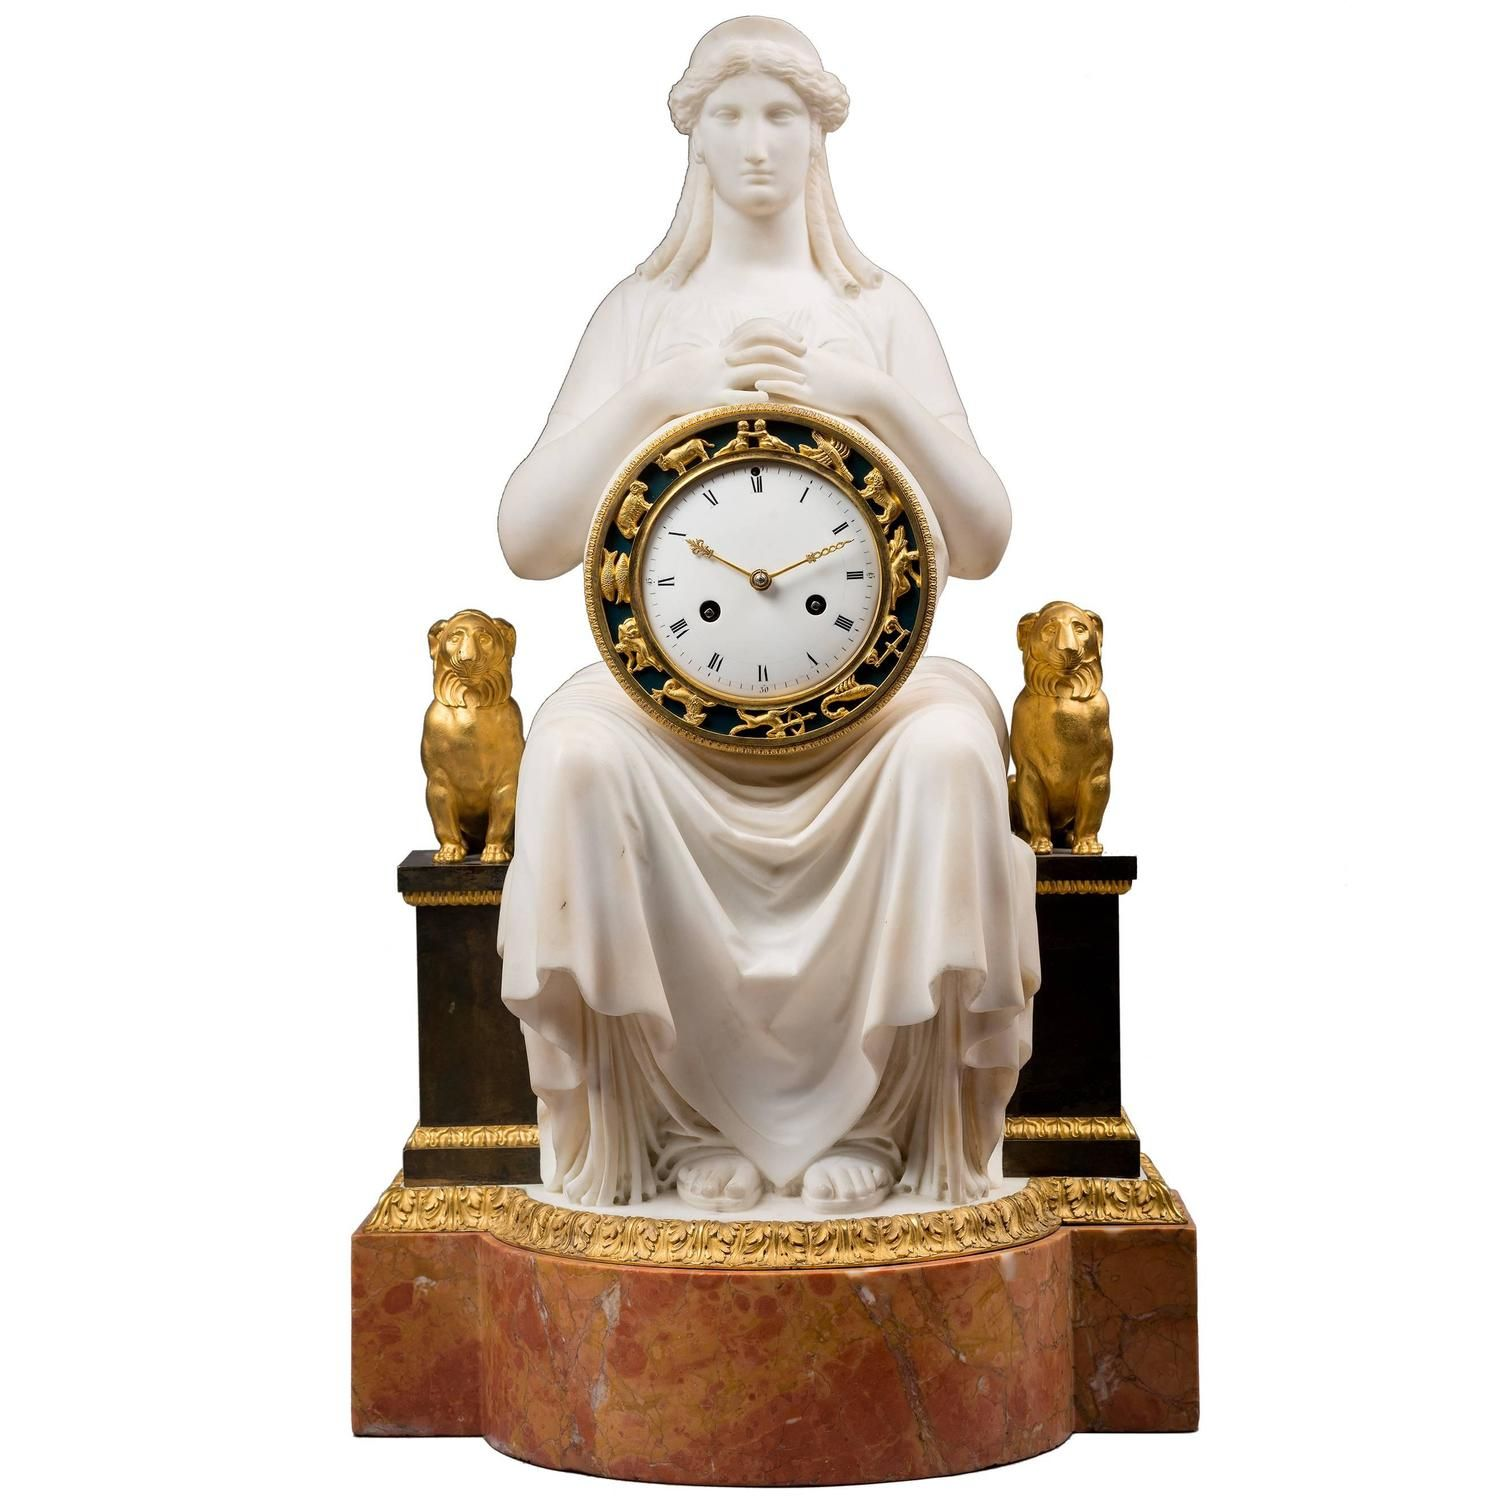 White Marble Empire Clock Urania Attributed To Sculptor Francois Masson 1stdibs Com Vintage Mantel Clocks Mantel Clock Antique Wall Clocks